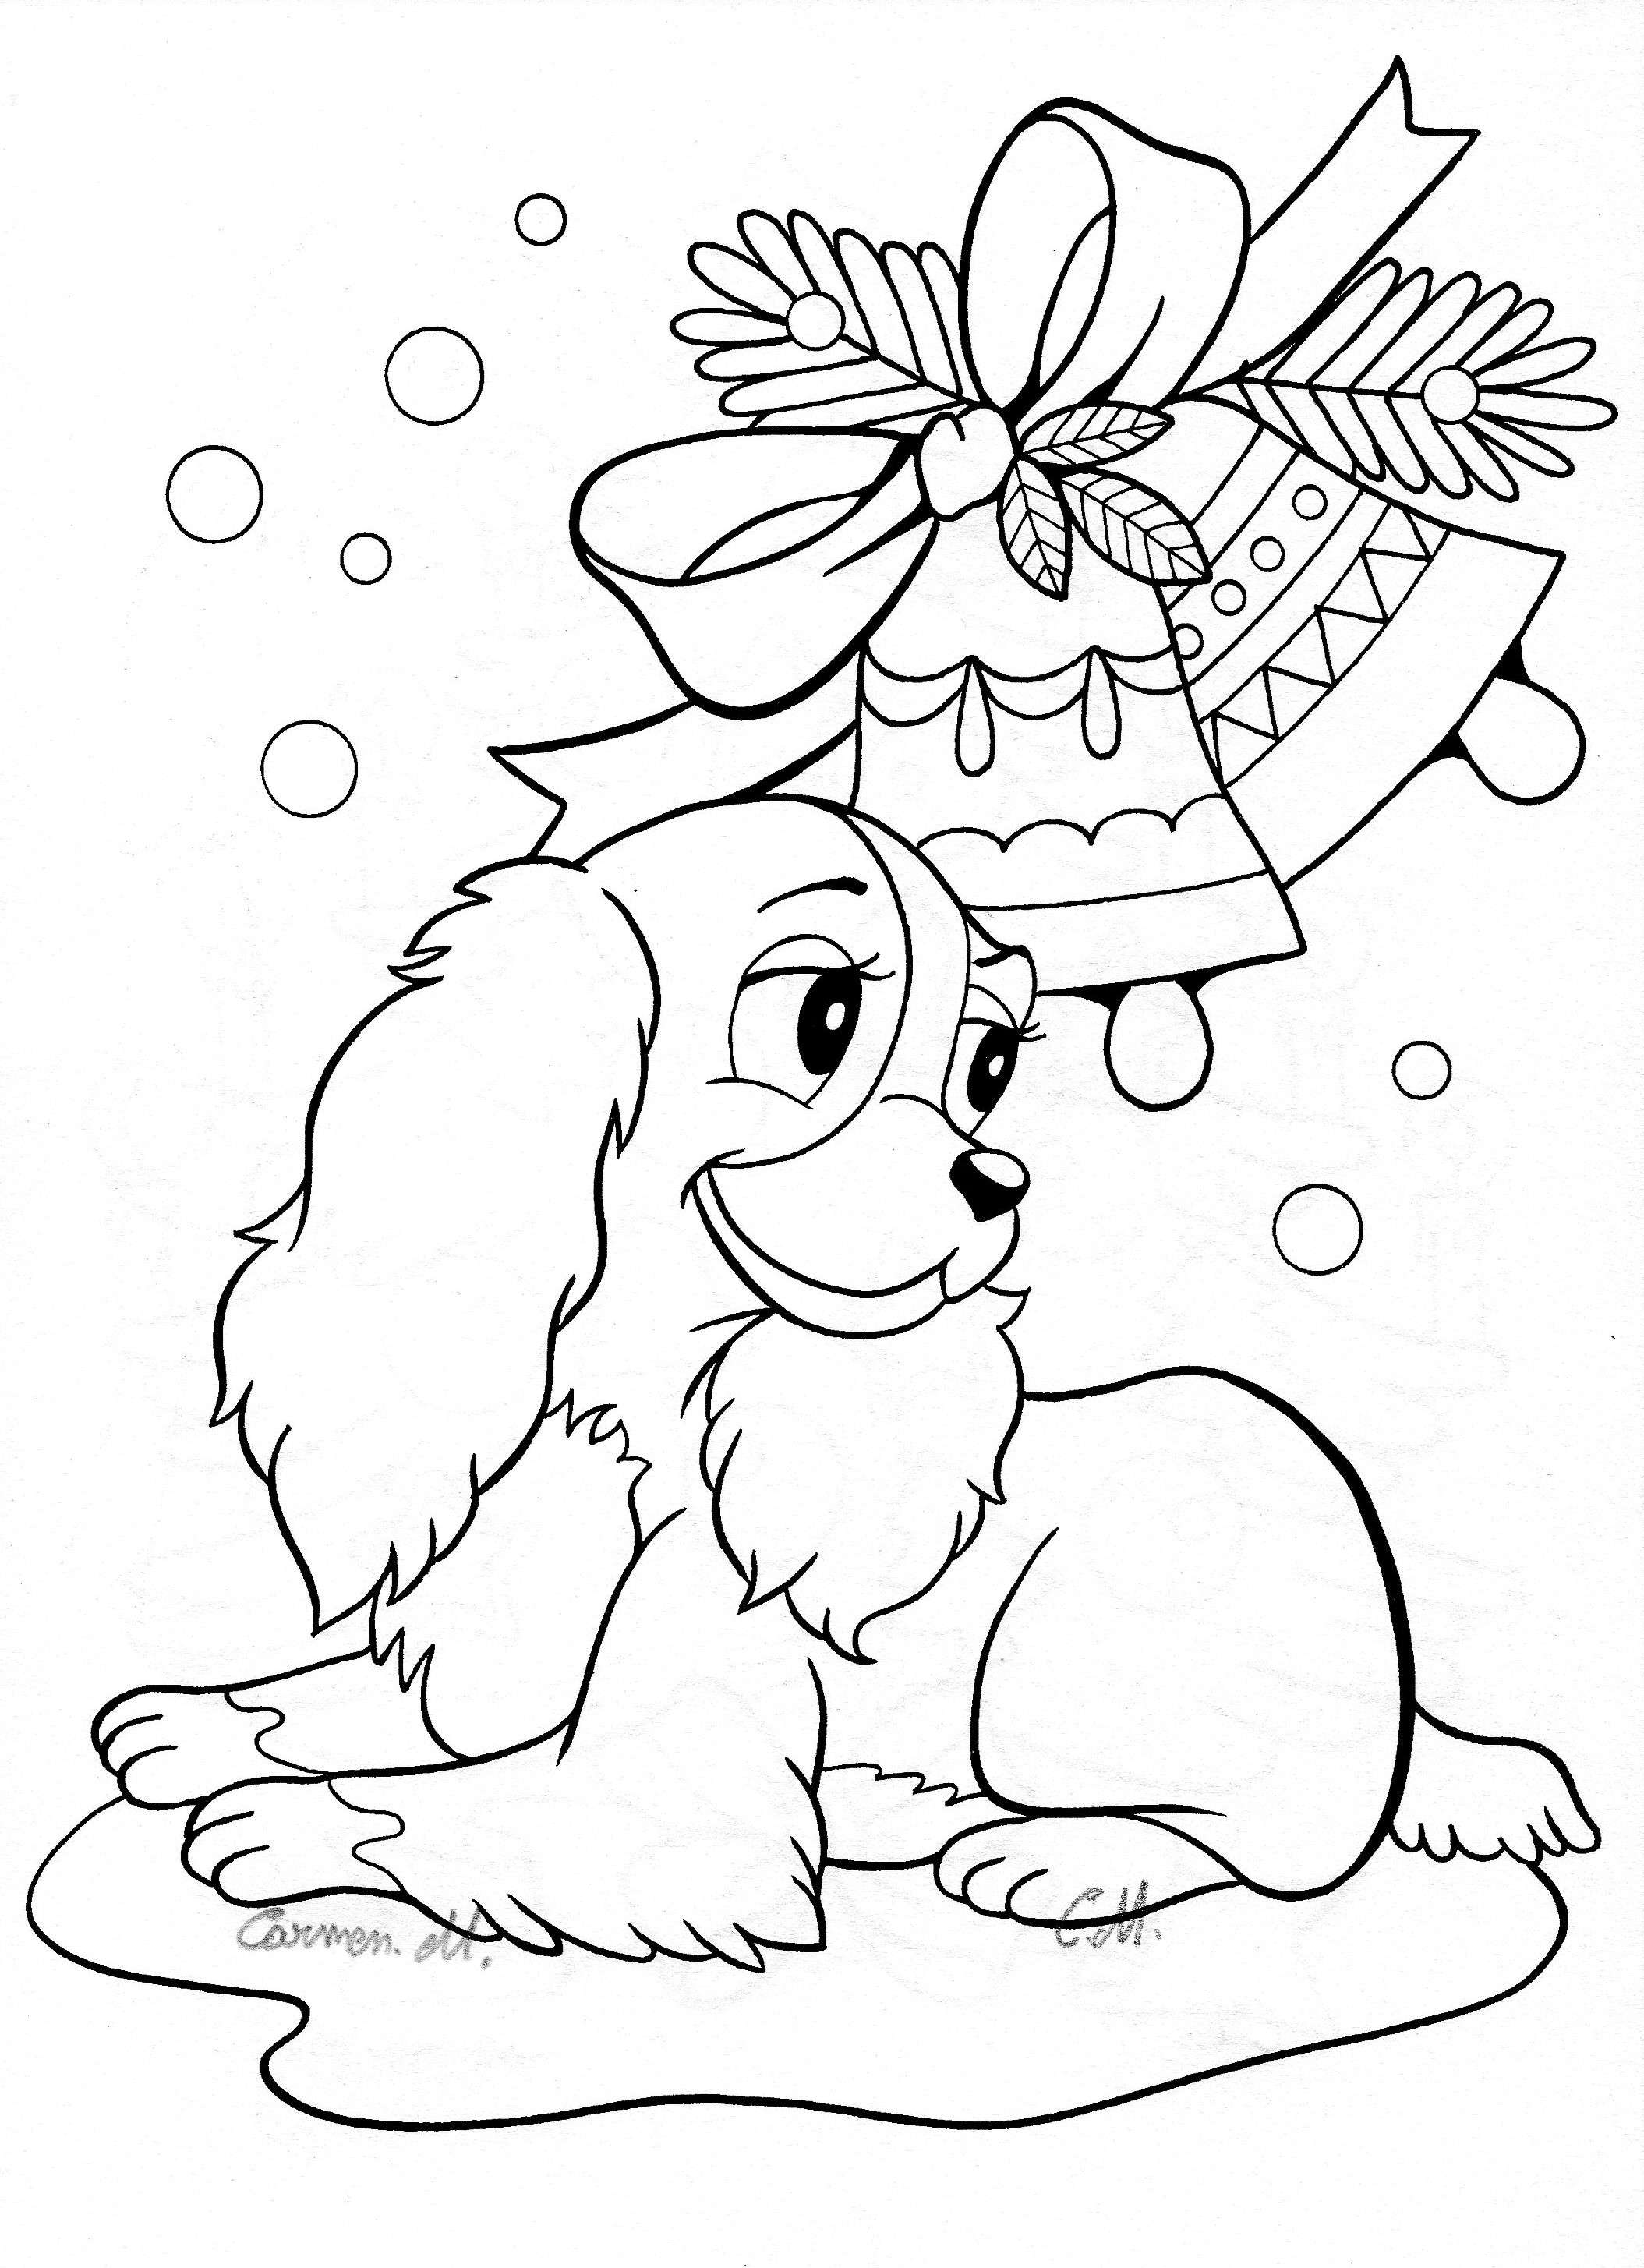 Santa And Baby Jesus Coloring Page With Awesome Merry Christmas Images 3000 Inspirational